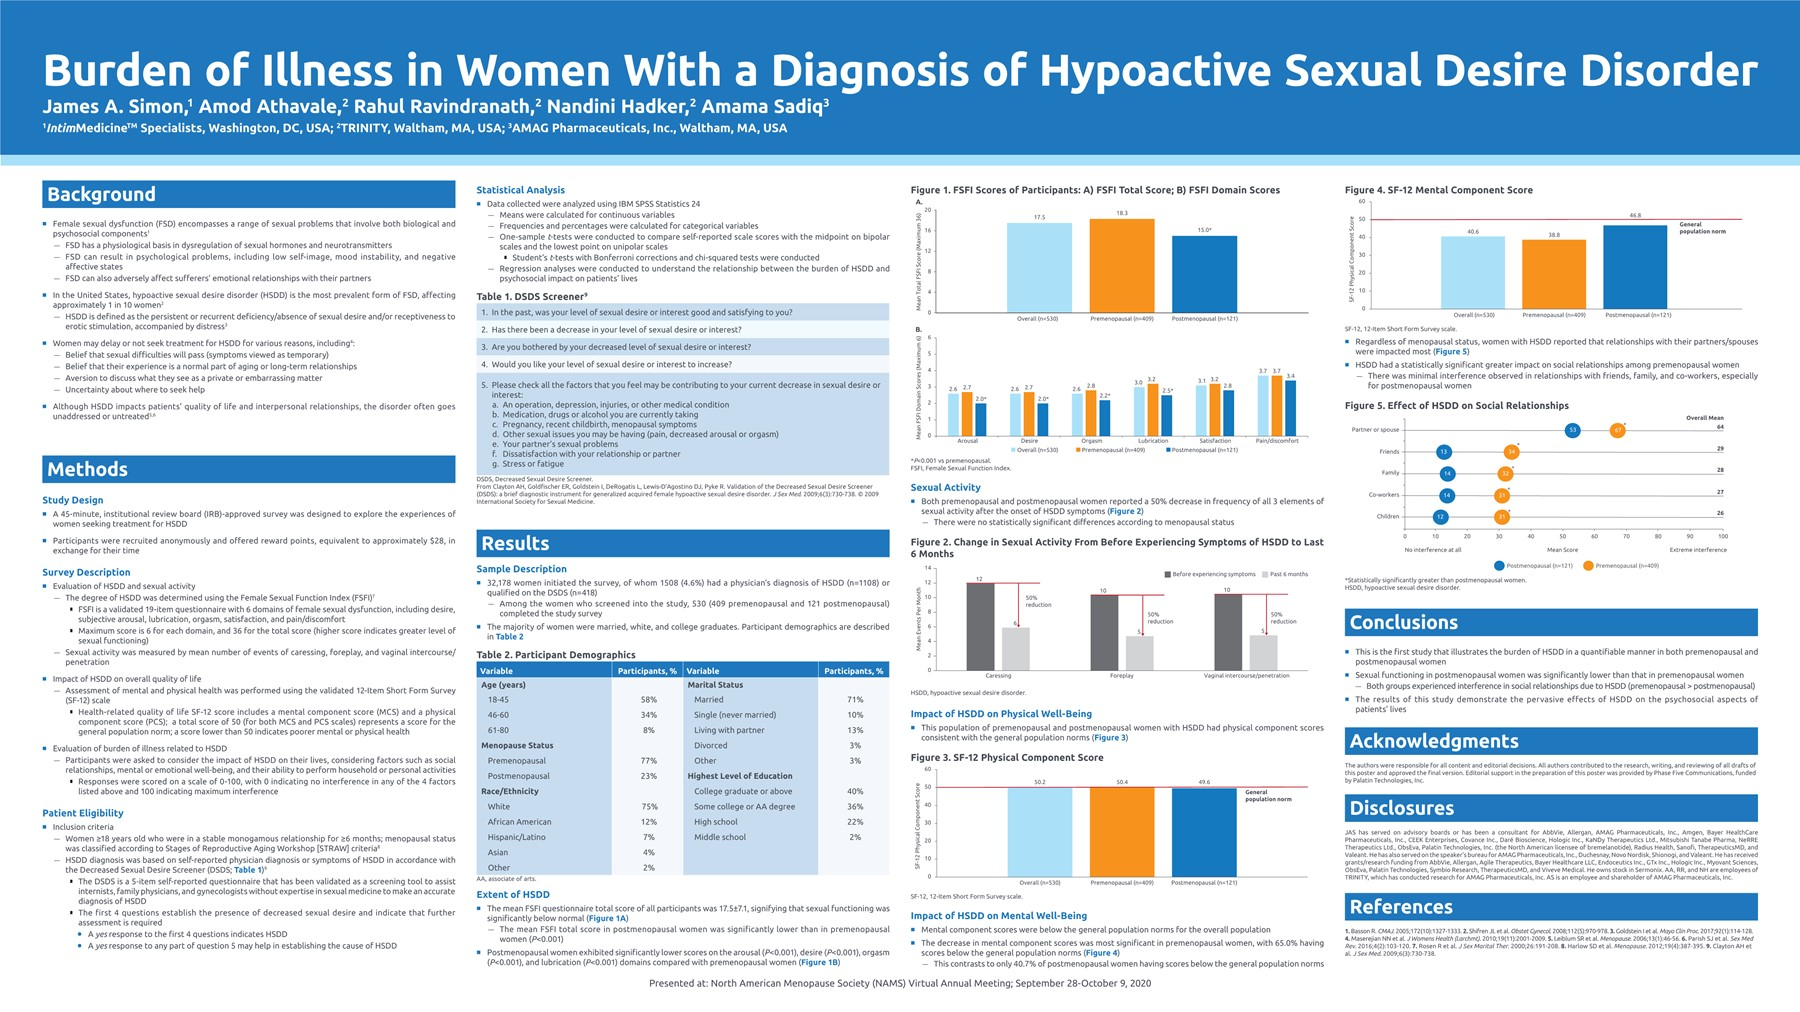 Burden of Illness in Women with a Diagnosis of Hypoactive Sexual Desire Disorder